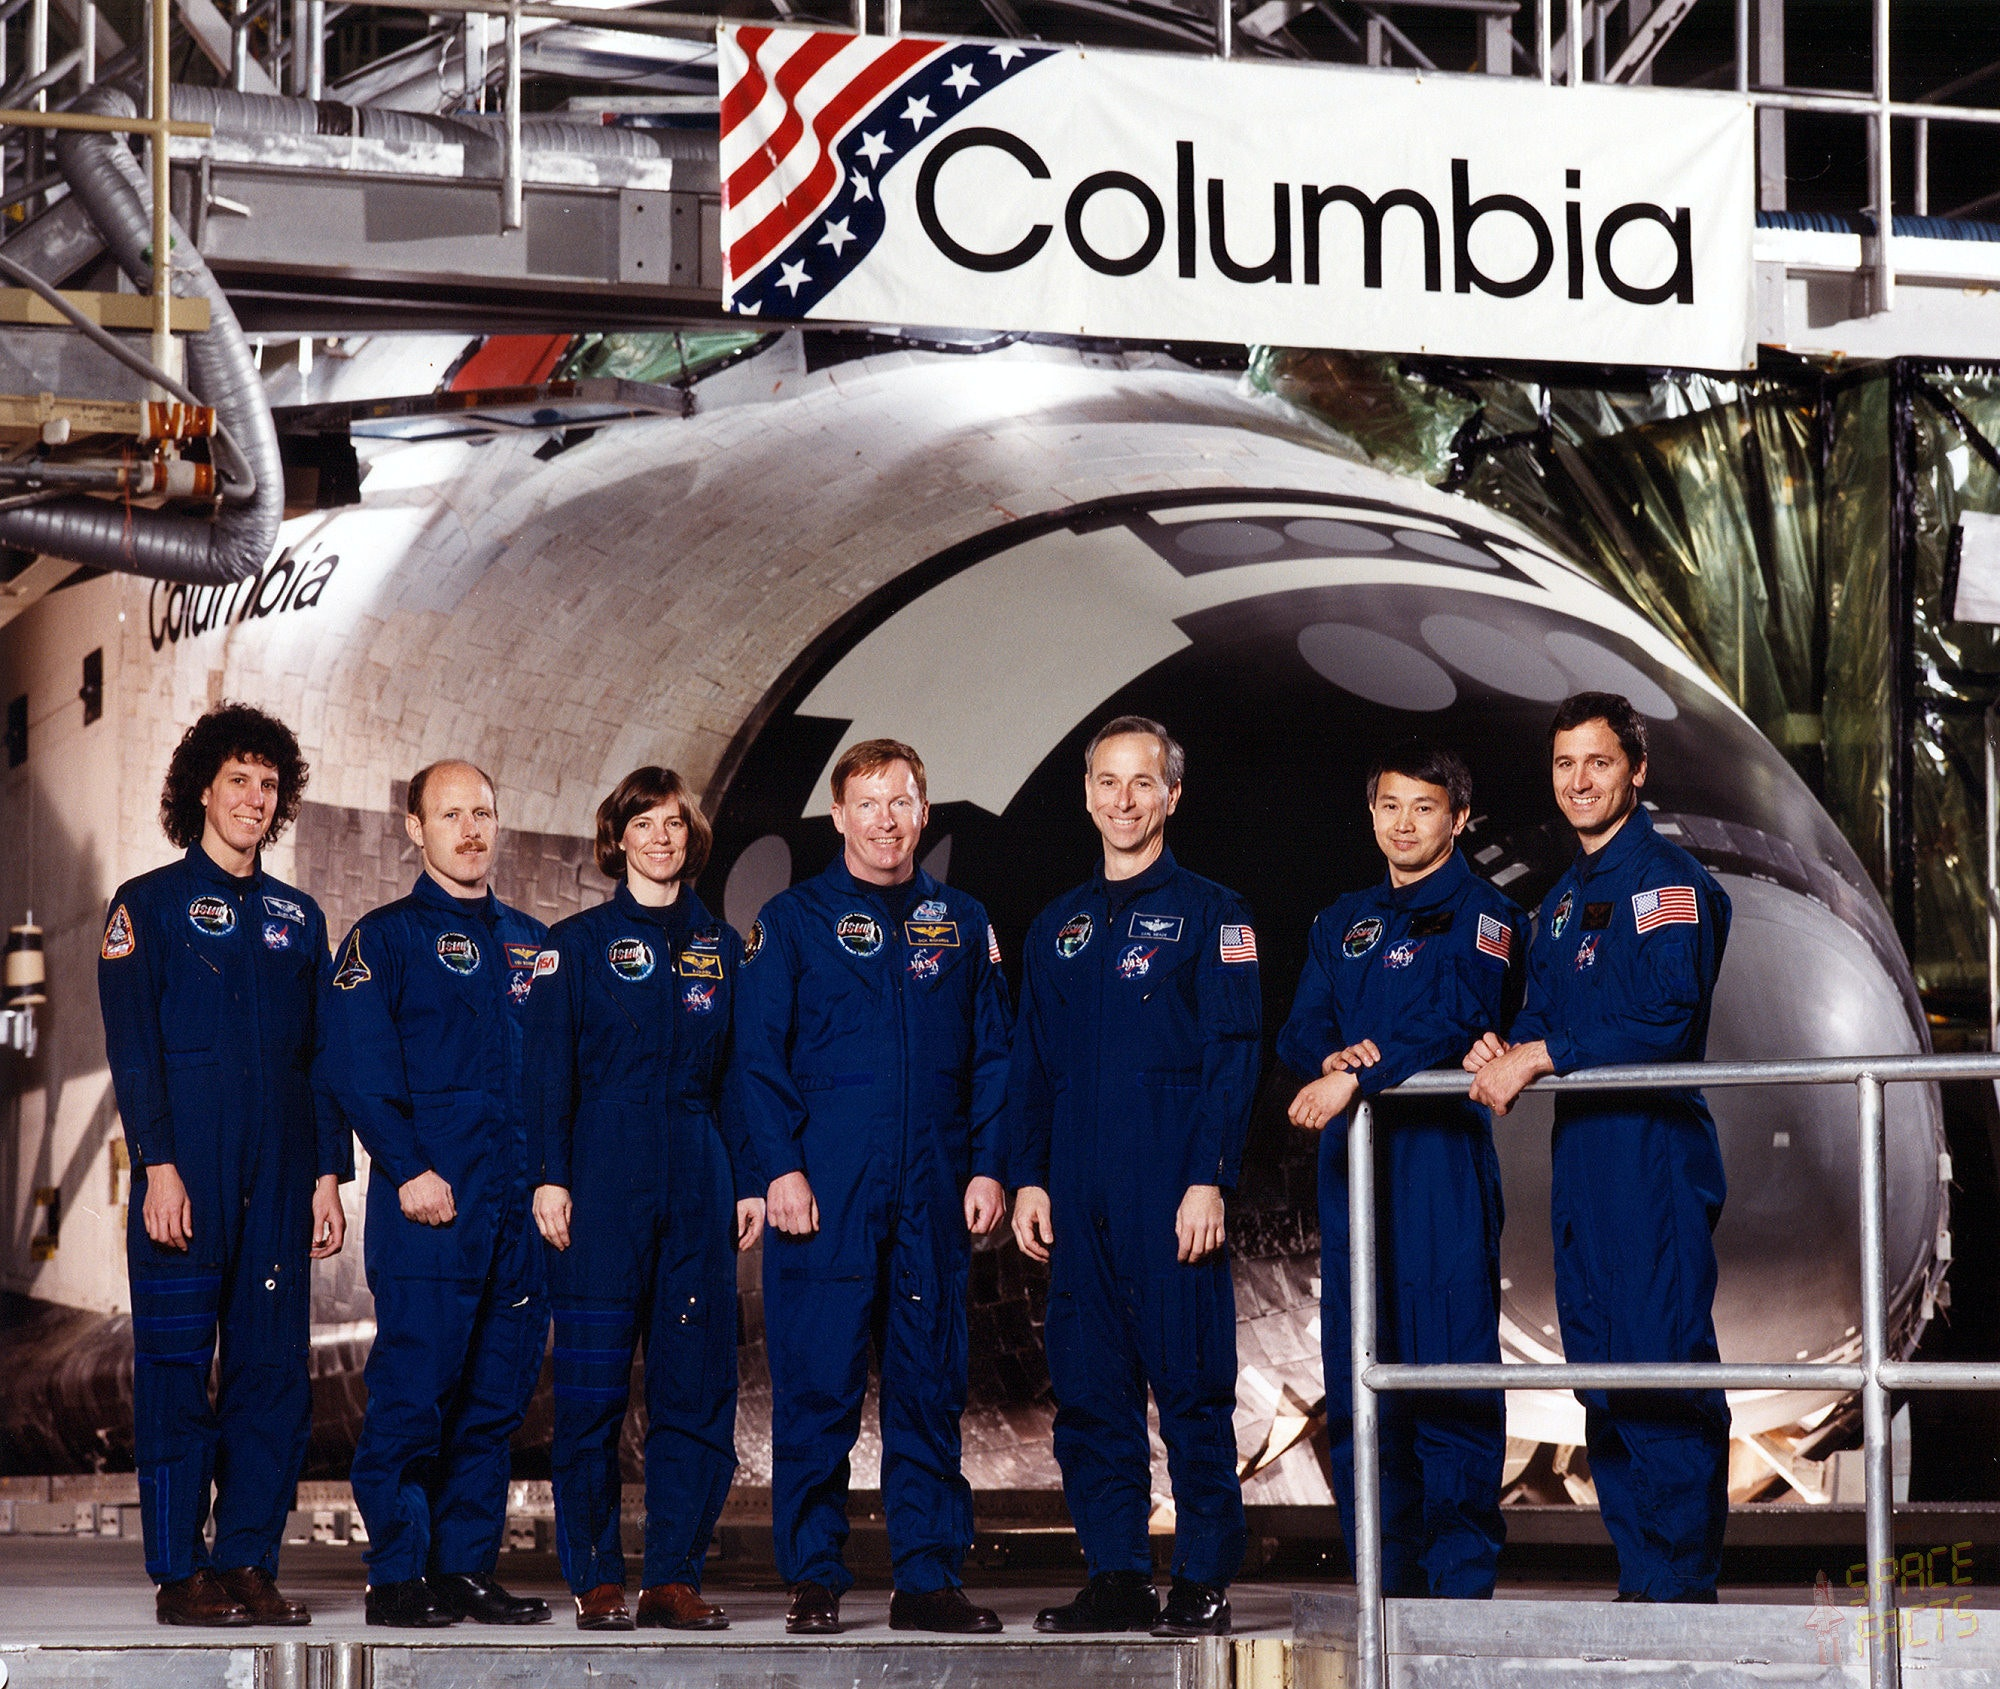 STS-50 Crew photo with commander Richard N. Richards and pilot Kenneth D. Bowersox, mission specialists Bonnie J. Dunbar, Ellen S. Baker and Carl J. Meade, and payload specialists Lawrence J. DeLucas and Eugene H. Trinh